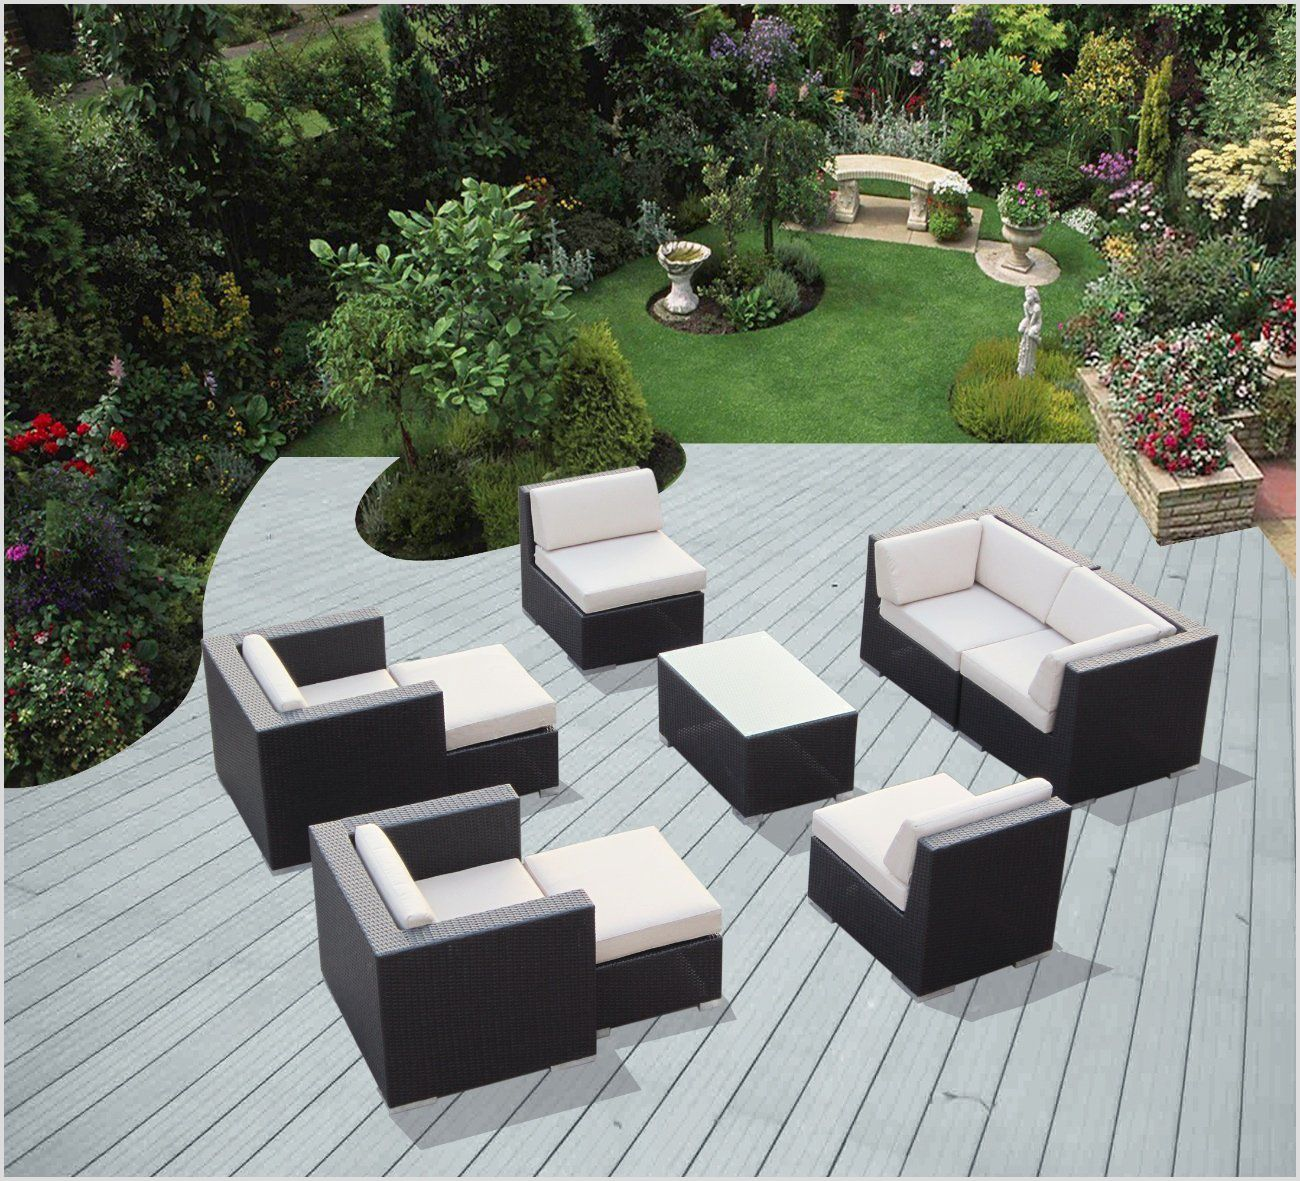 Exclusive Outdoor Furniture Ohana Collection Genuine Ohana Outdoor Patio  Wicker Furniture All Weather Gorgeous Couch Set With Free Patio Cover